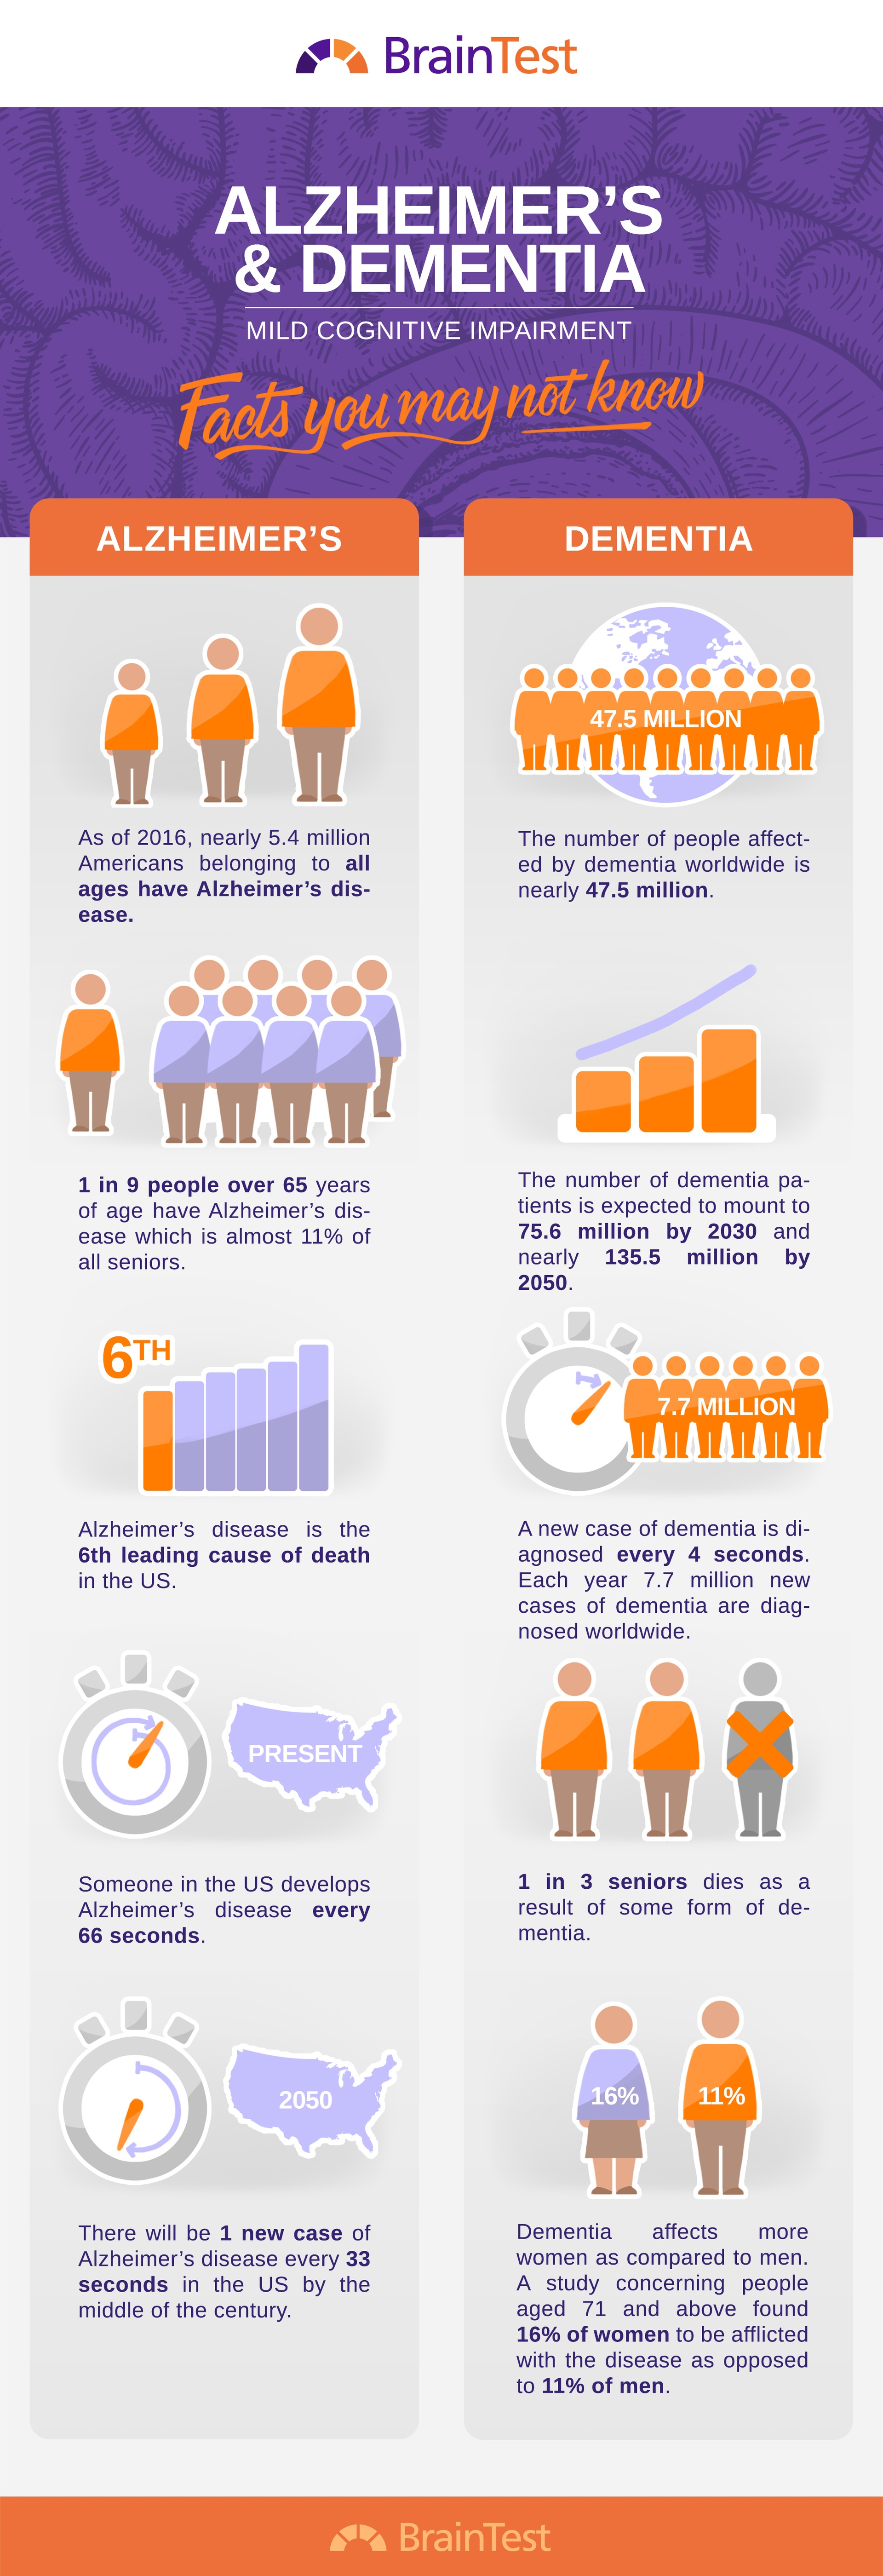 Alzheimer's And Dementia Mild Cognitive Impairment Infographic